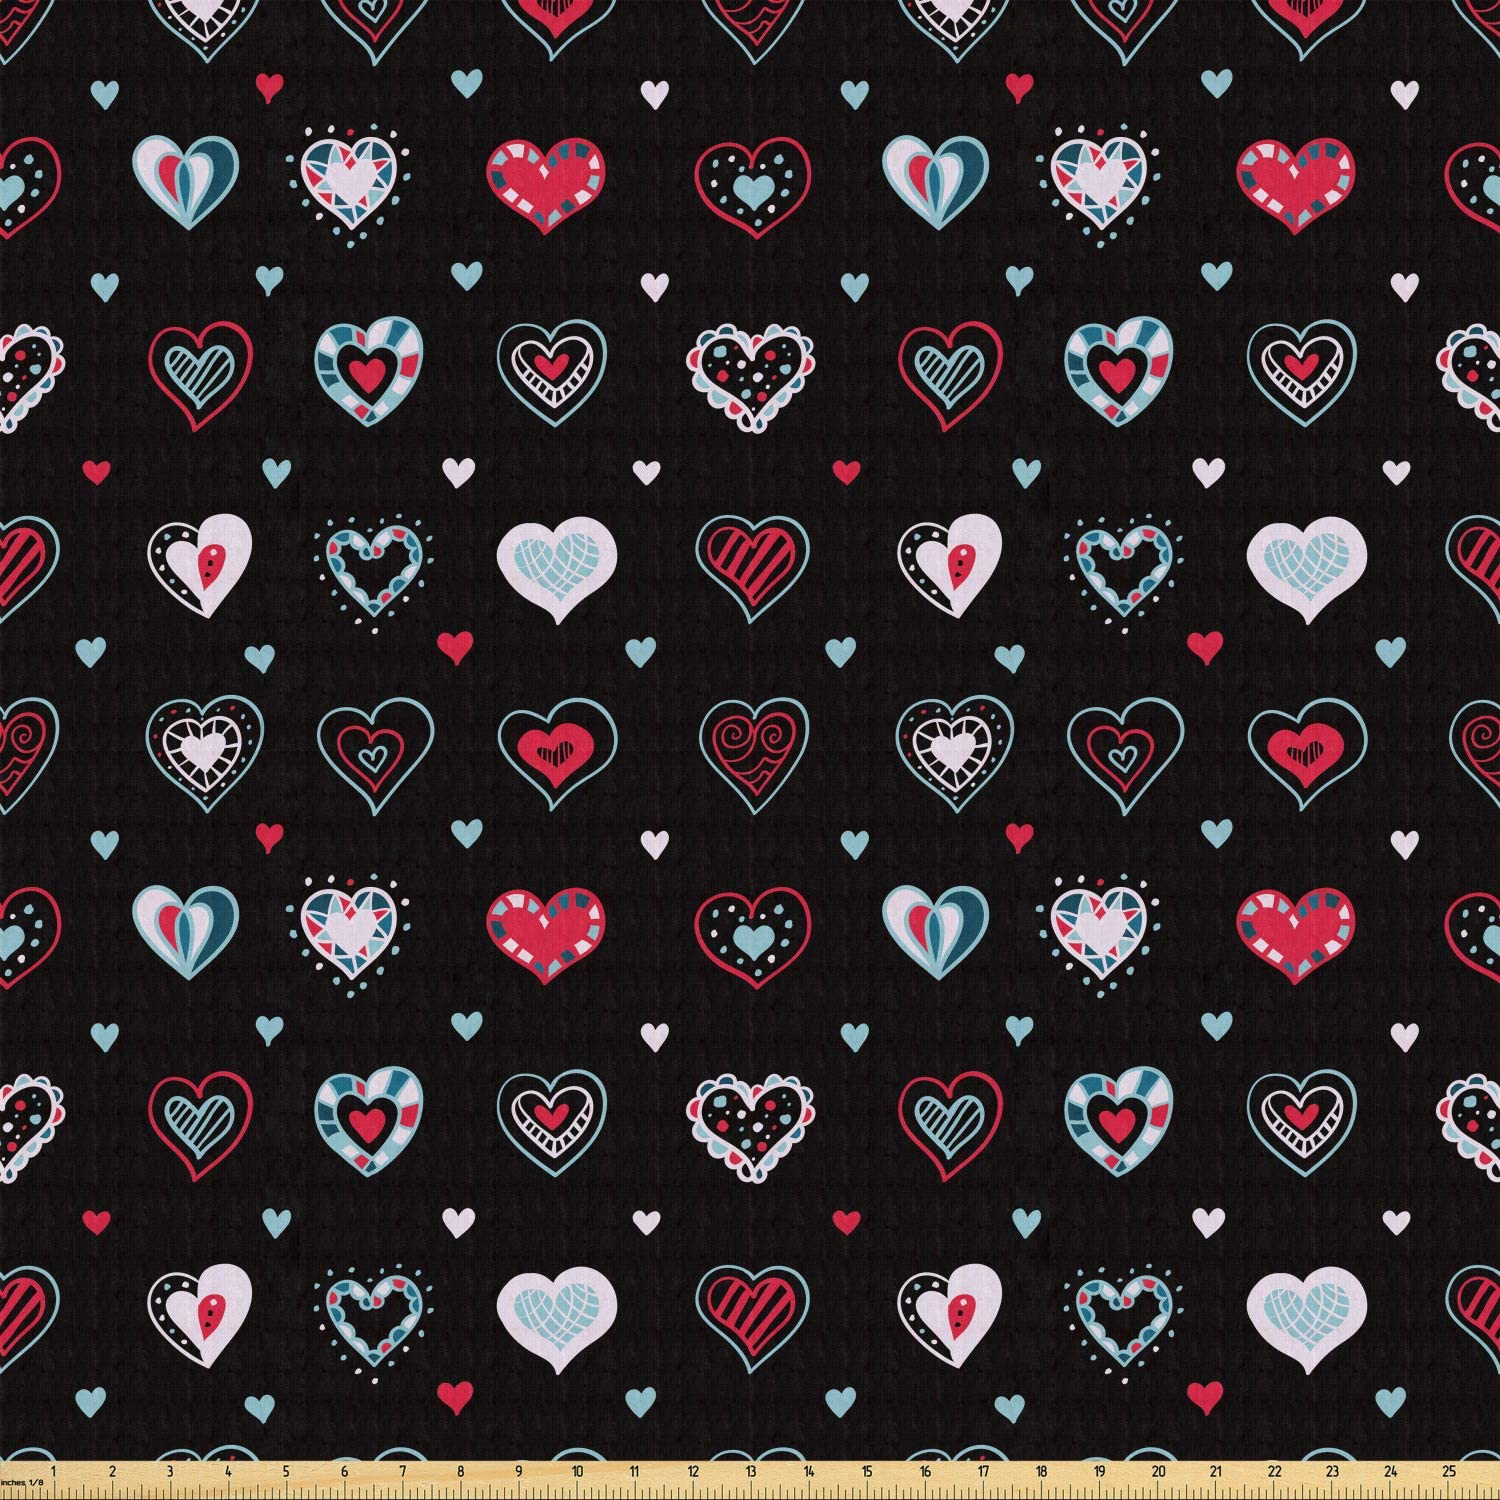 Ambesonne Love Fabric by The Yard, Valentine's Day Themeds Love Hand Drawn Heart Pattern Wedding Inspired, Stretch Knit Fabric for Clothing Sewing and Arts Crafts, 1 Yard, Black Red